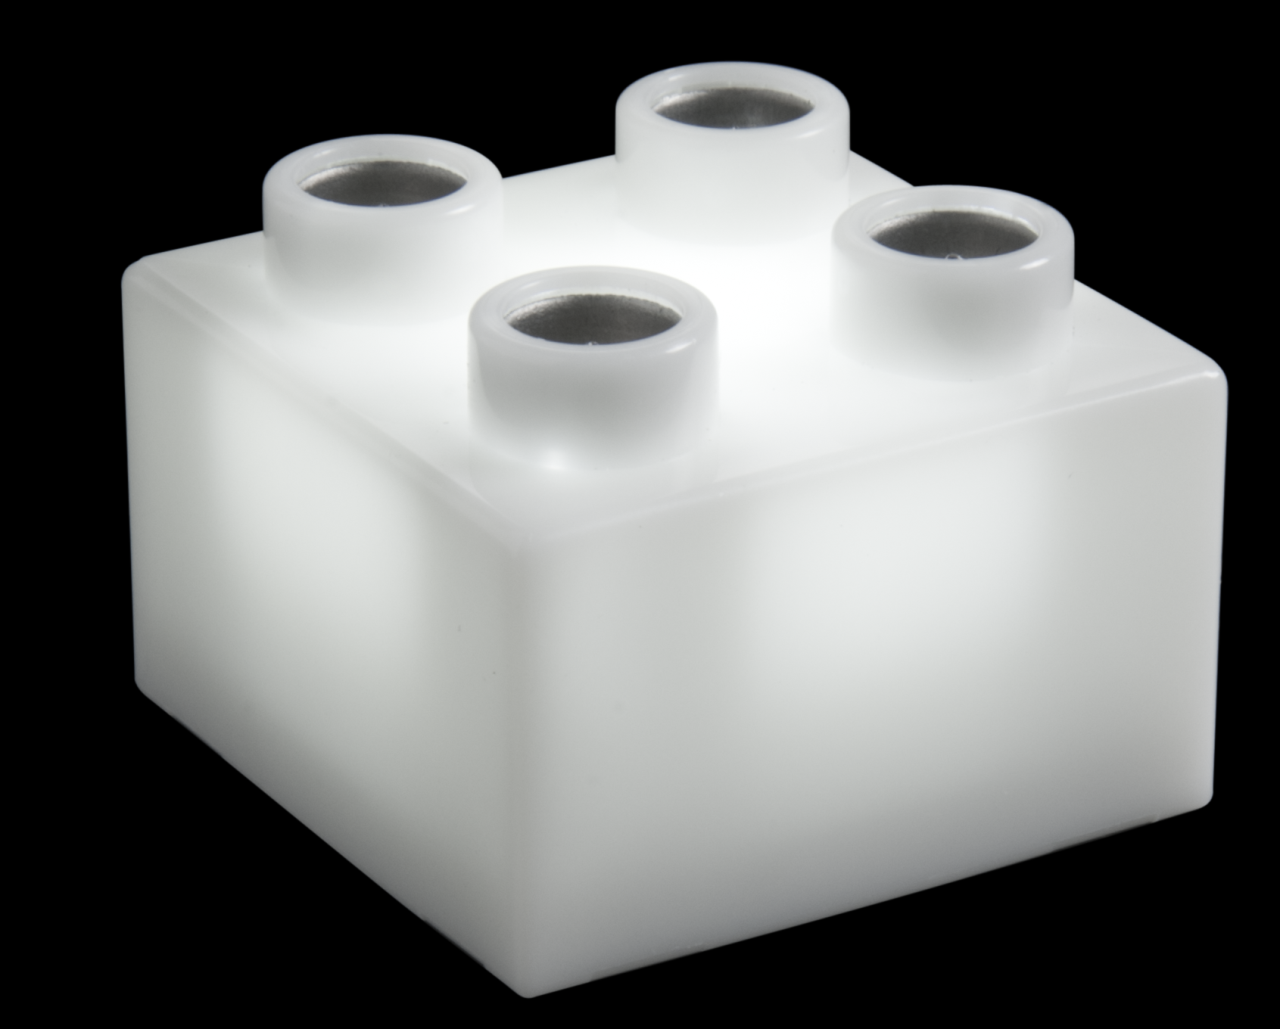 STAX® Expansion Pack 2x2 White - DUPLO®-kompatibel